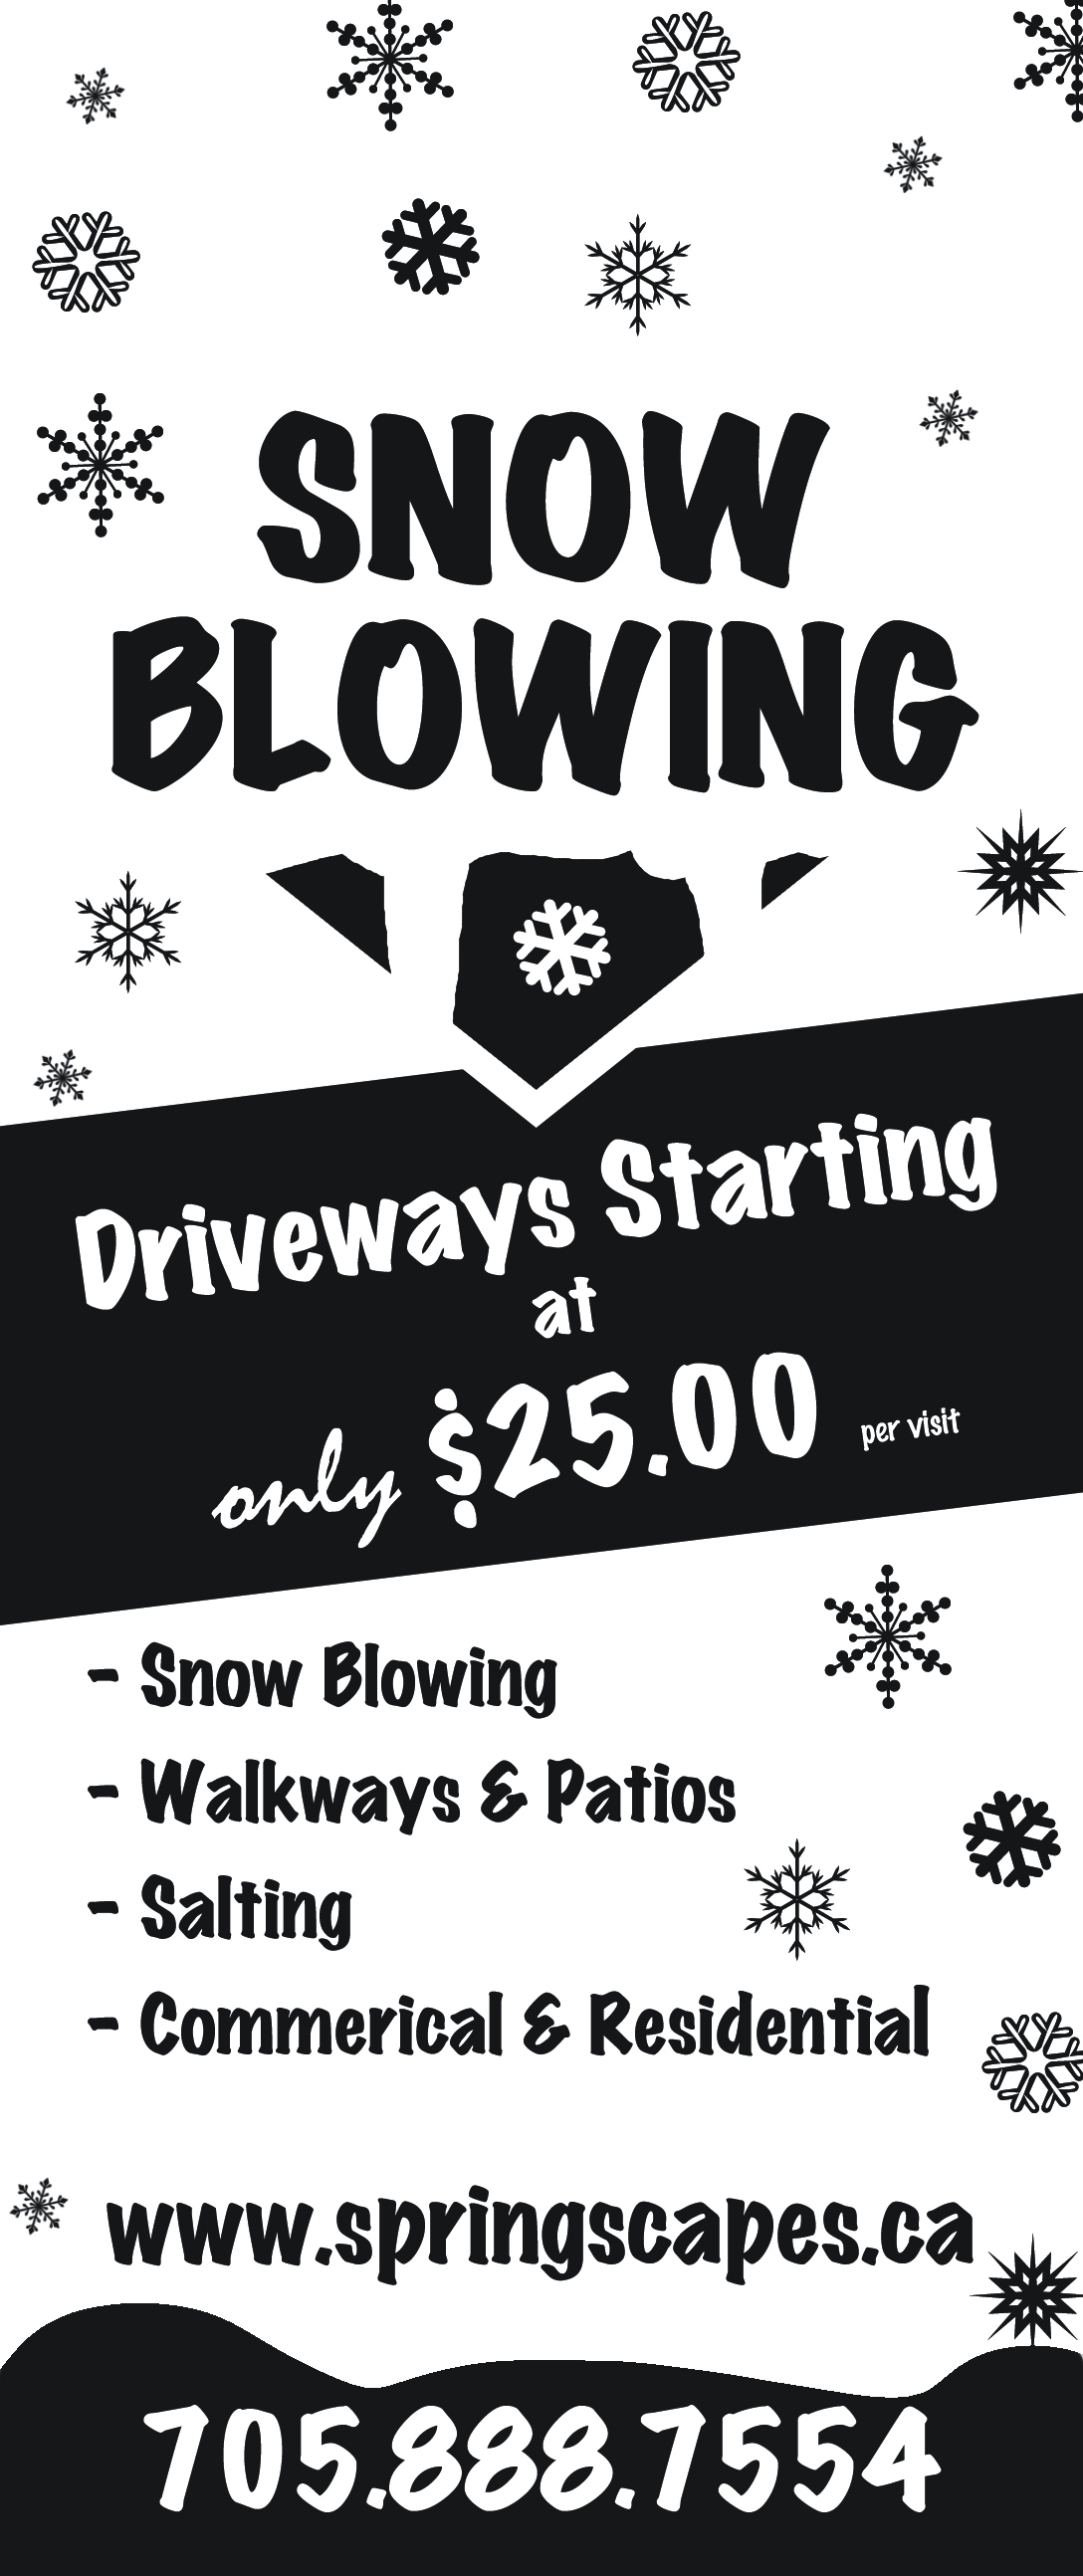 Snow Shoveling Flyers Templates Carnavaljmsmusicco - Snow plowing flyer template